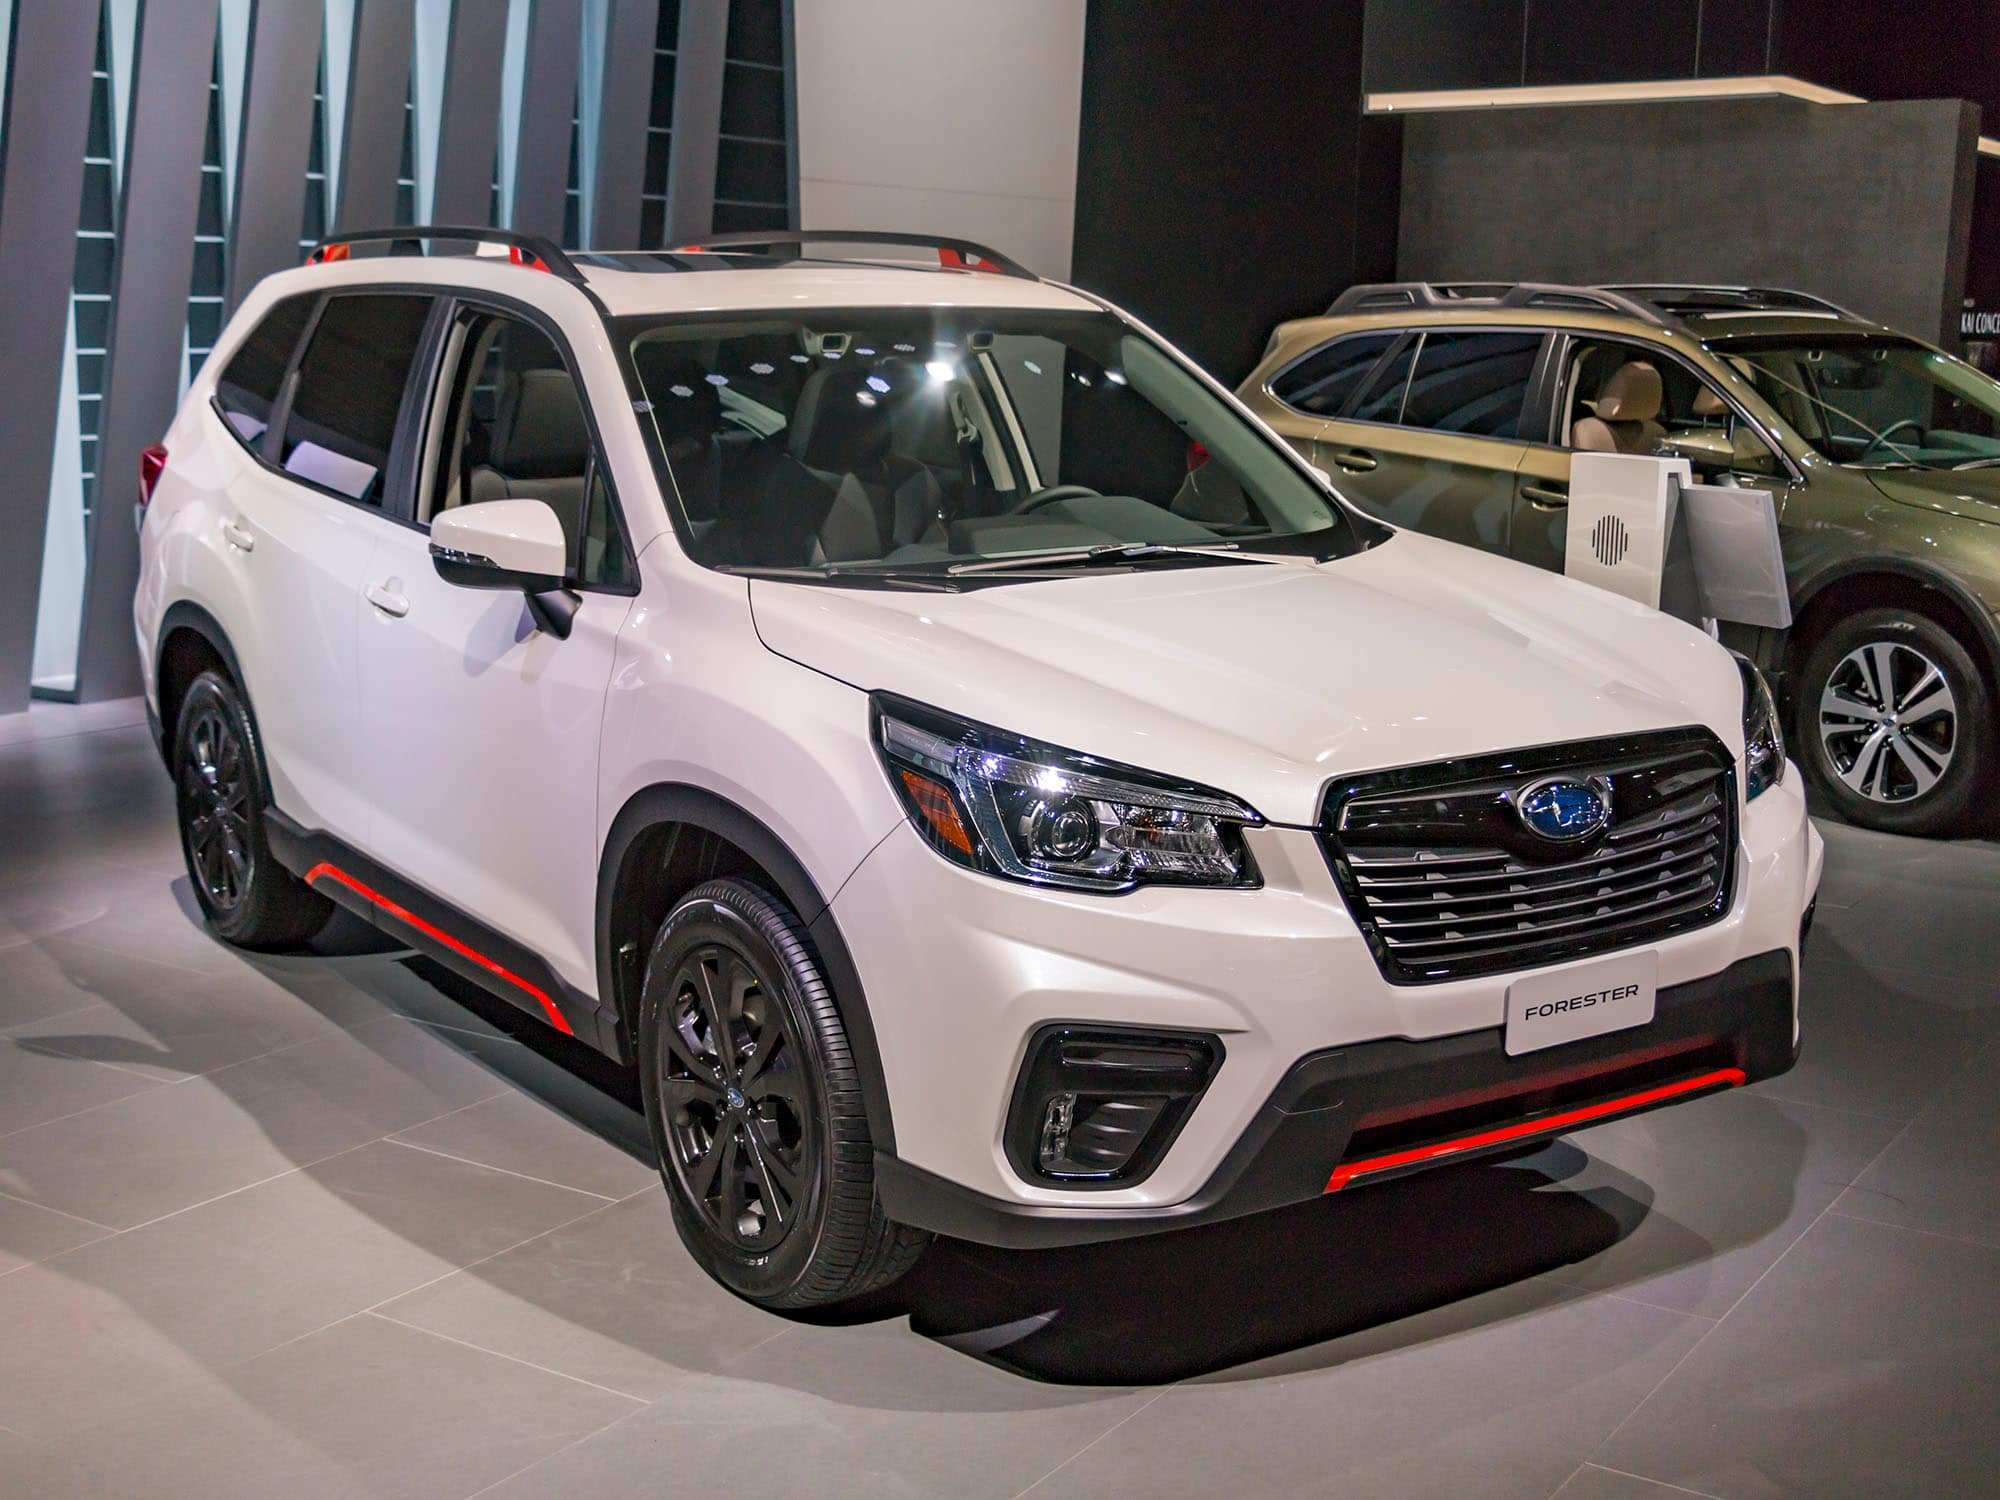 52 All New 2019 Subaru Price Specs